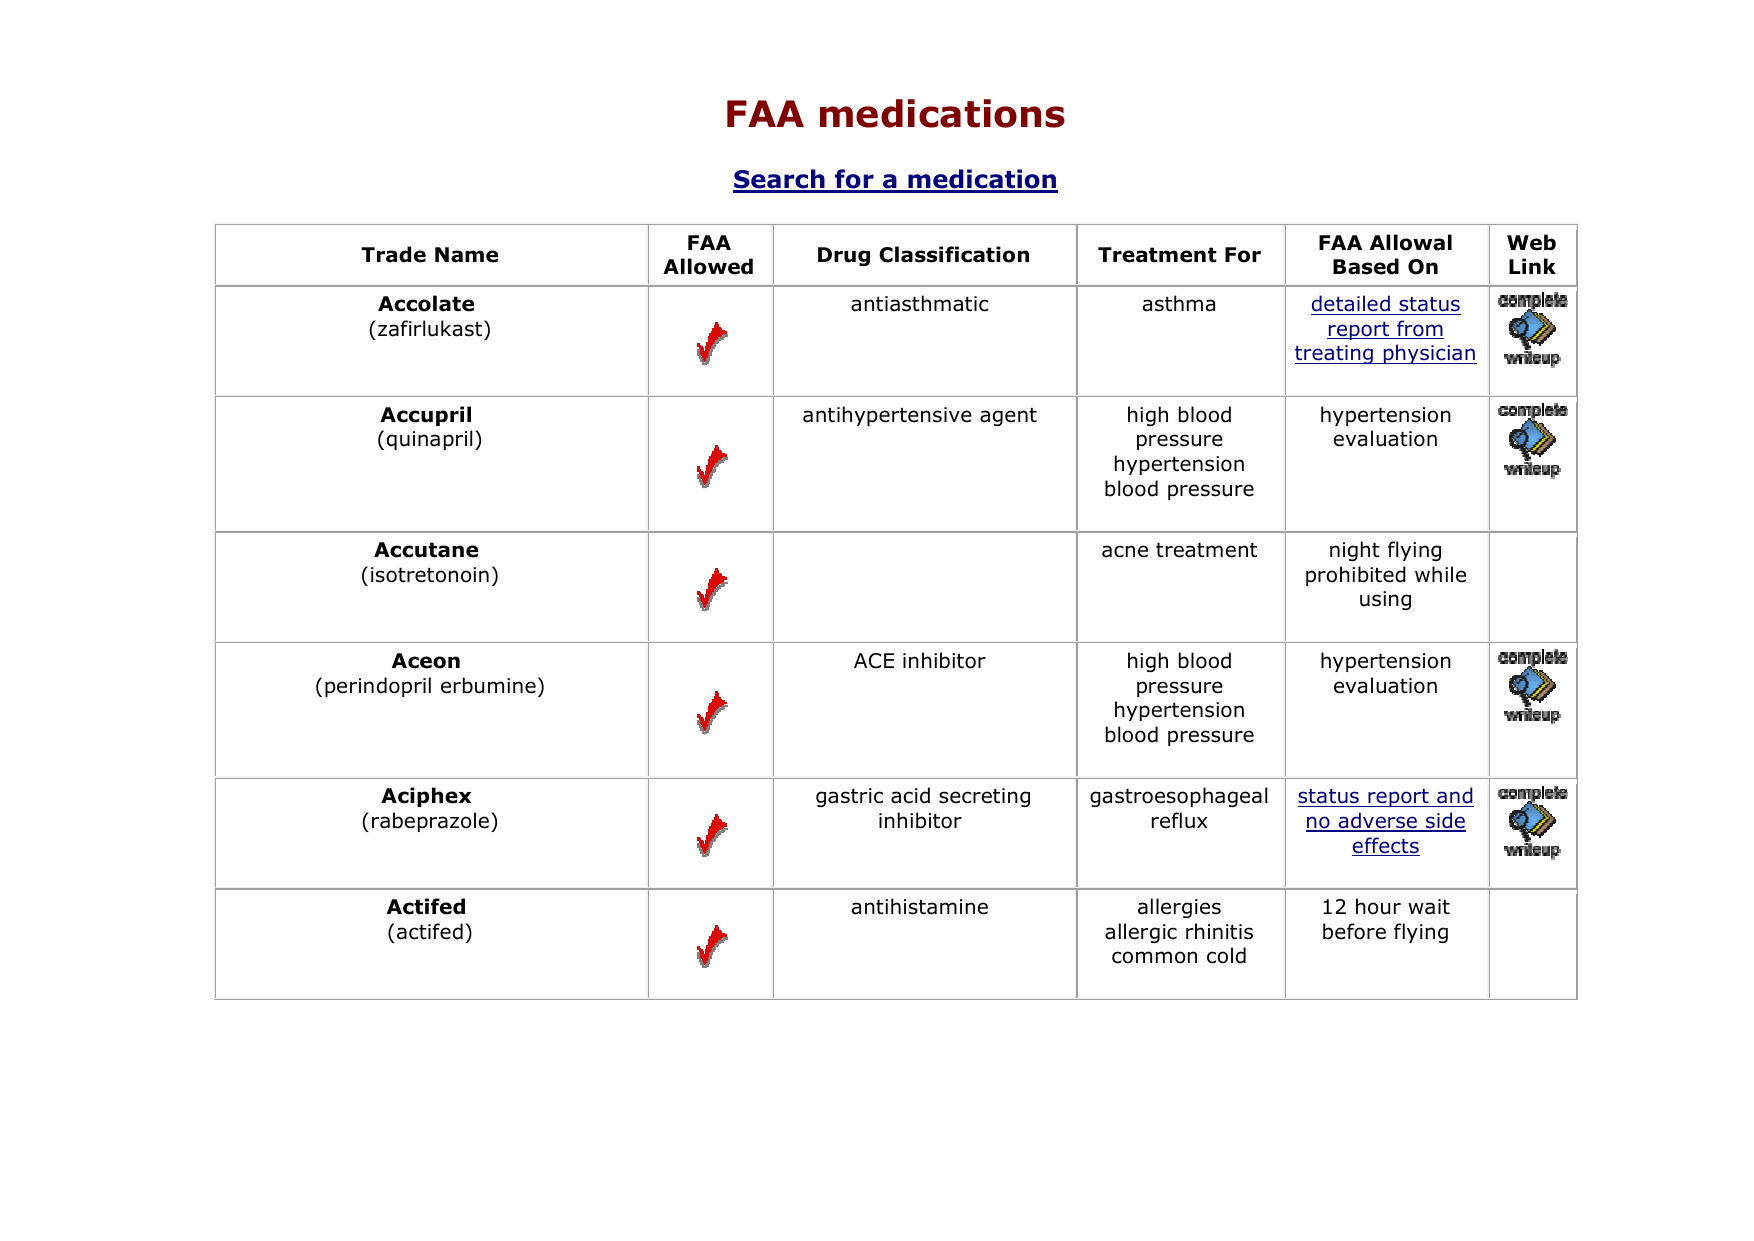 FAA approved medication list